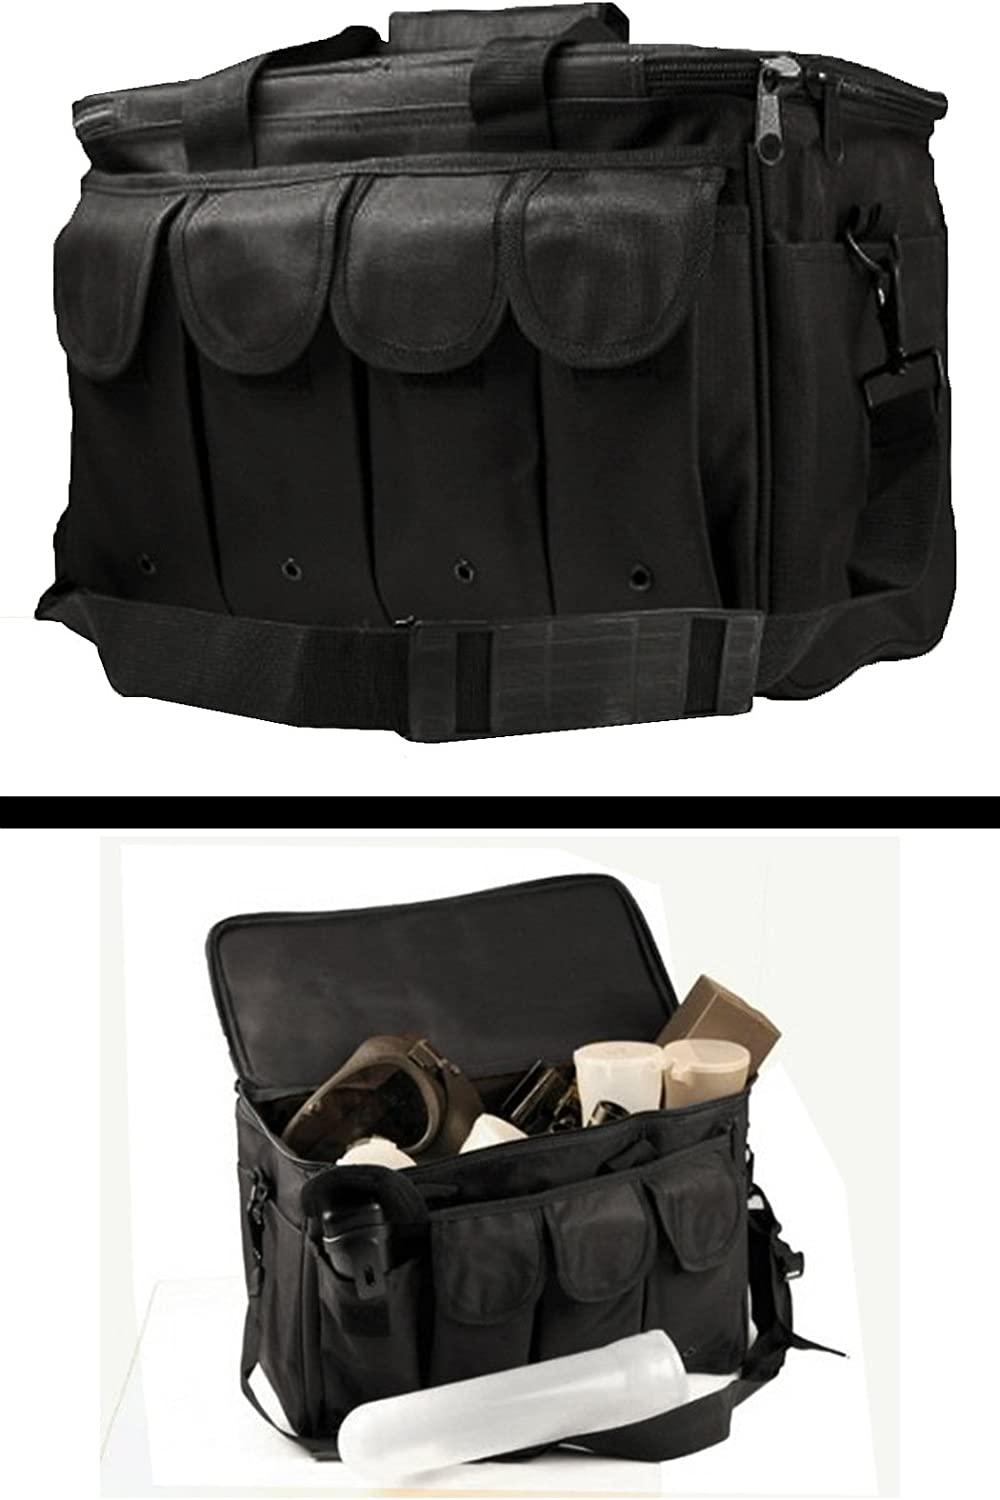 Free shipping anywhere in the nation Ultimate Arms Gear Max 49% OFF New Generation Equipment Shooti Black Stealth